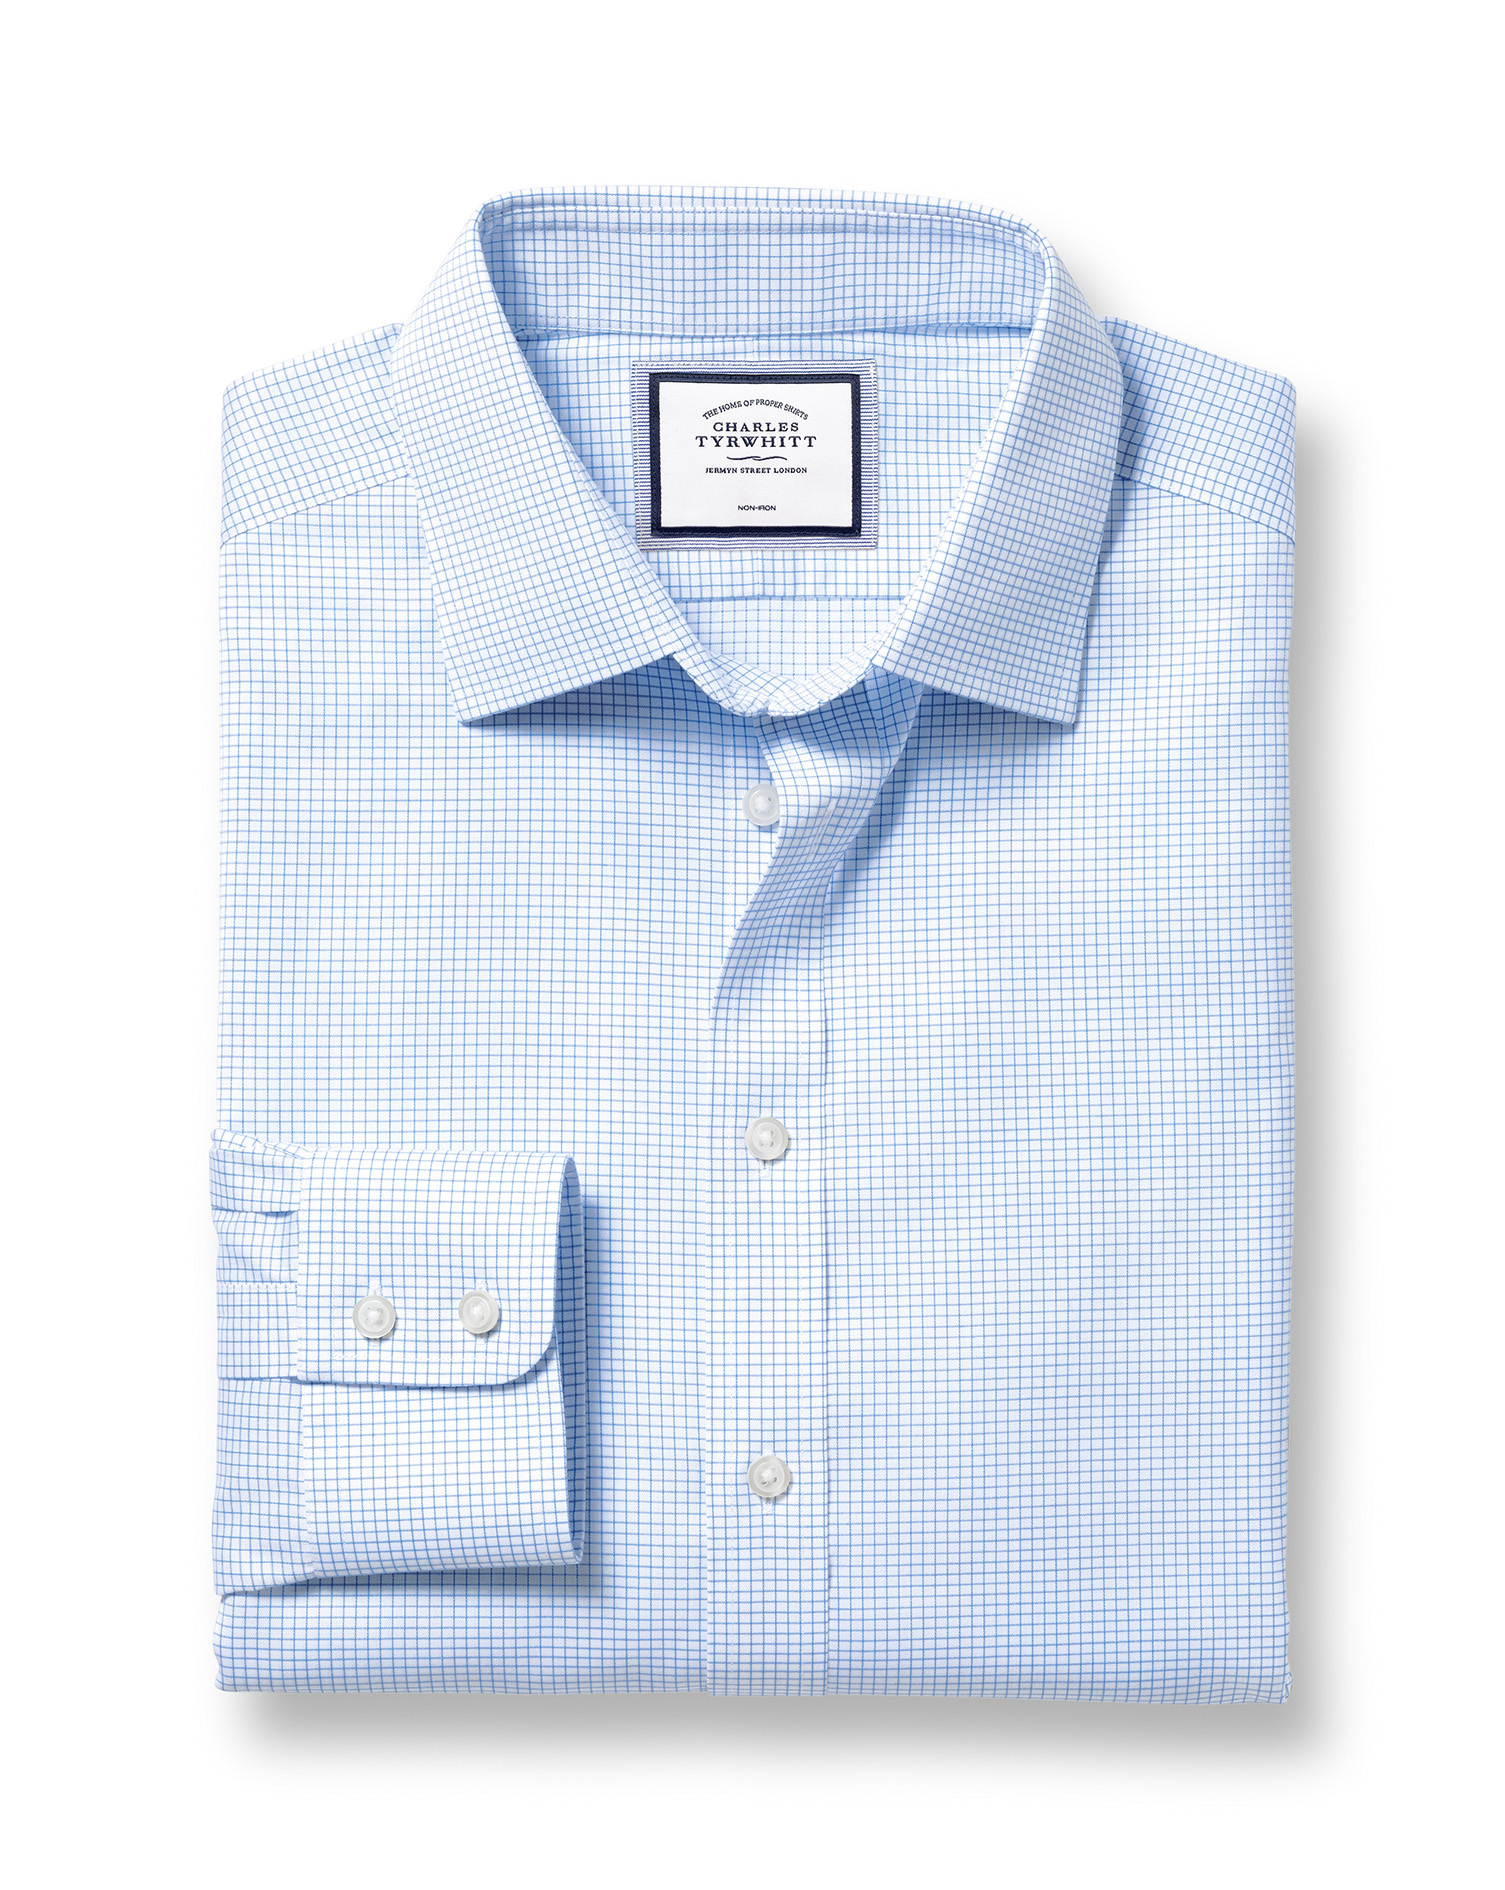 Classic Fit Non-Iron Twill Mini Grid Check Sky Blue Cotton Formal Shirt Double Cuff Size 15.5/34 by